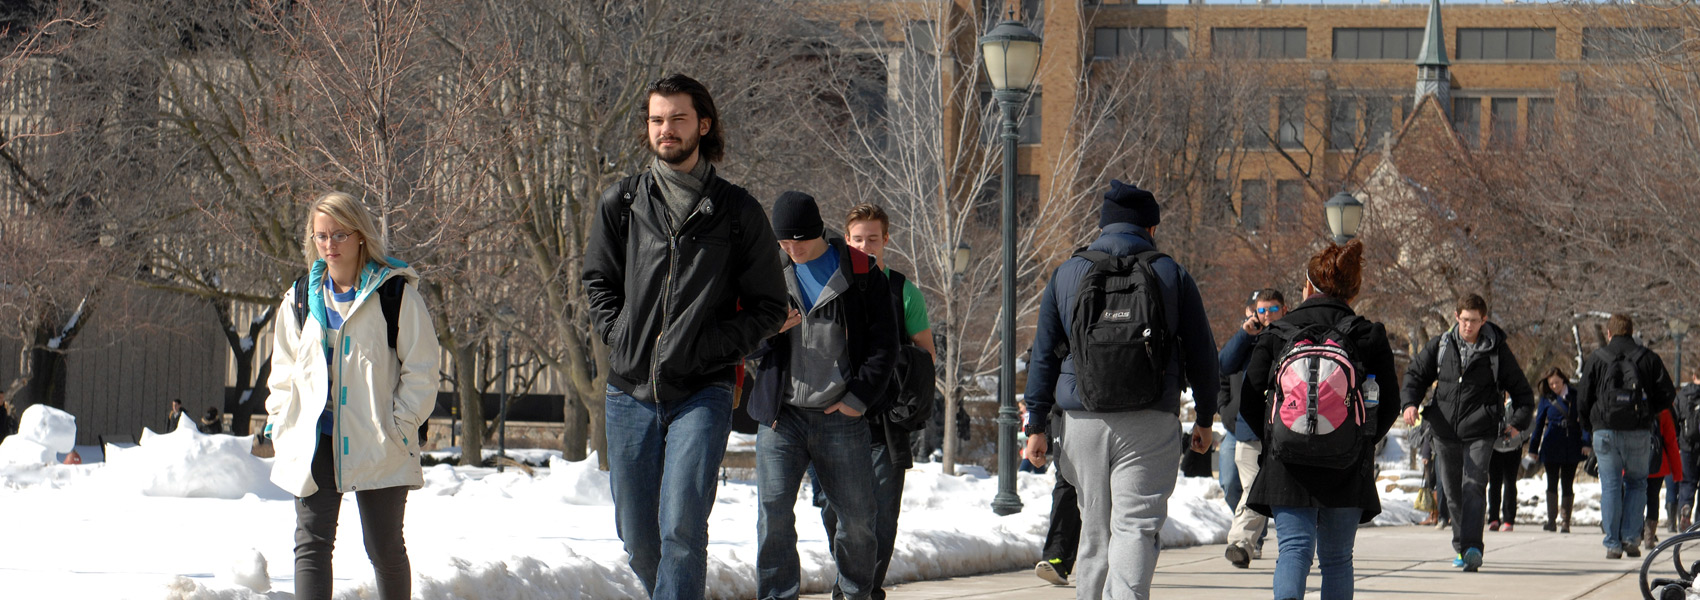 Students walking in the Marquette University Central Mall